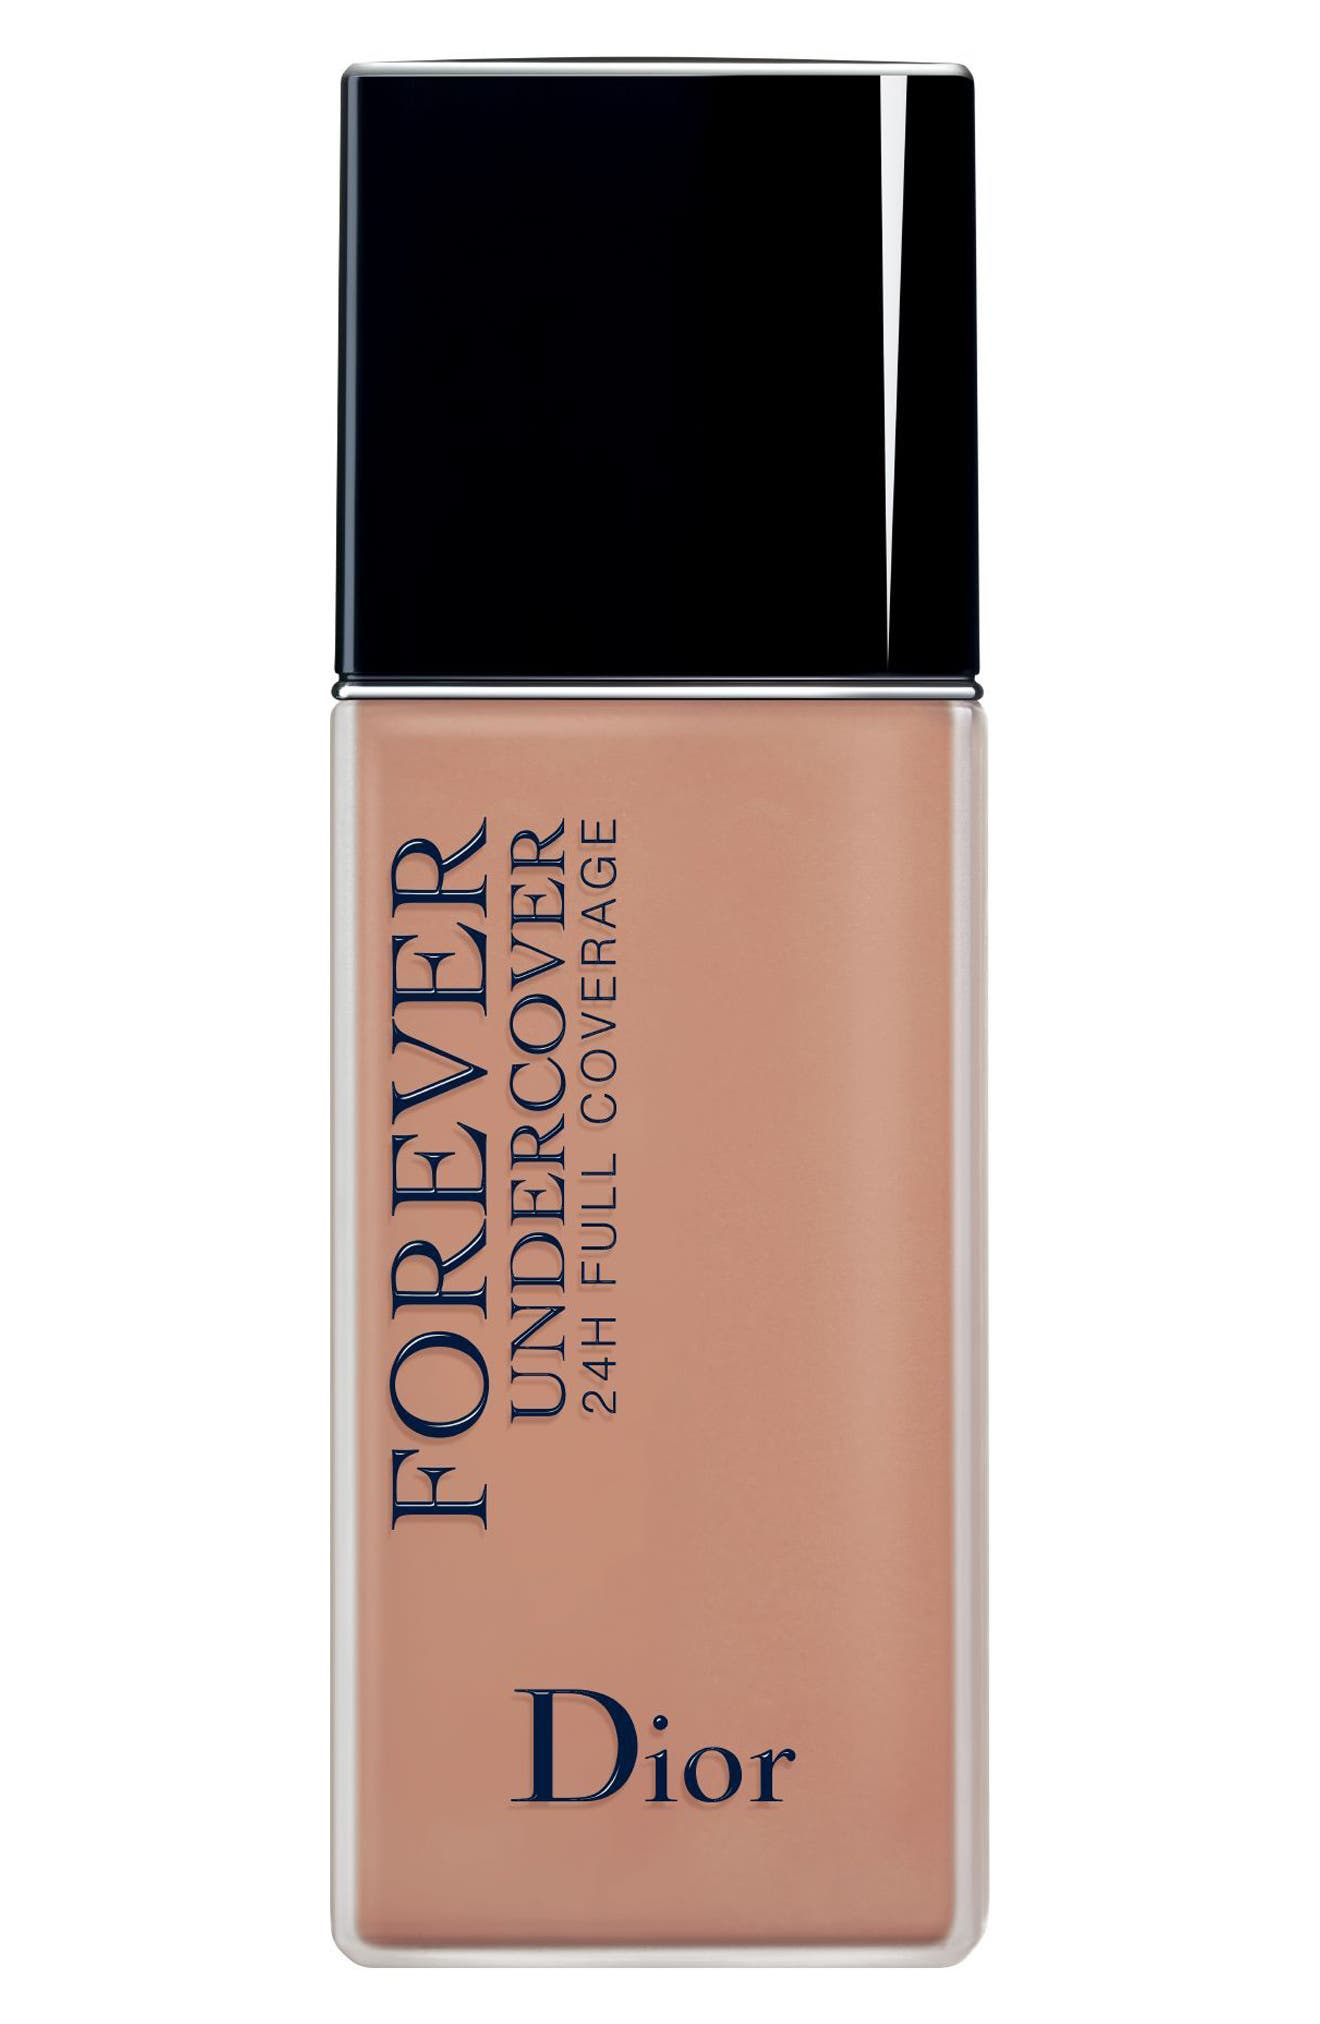 Dior Diorskin Forever Undercover 24-Hour Full Coverage Water-Based Foundation - 044 Dark Almond